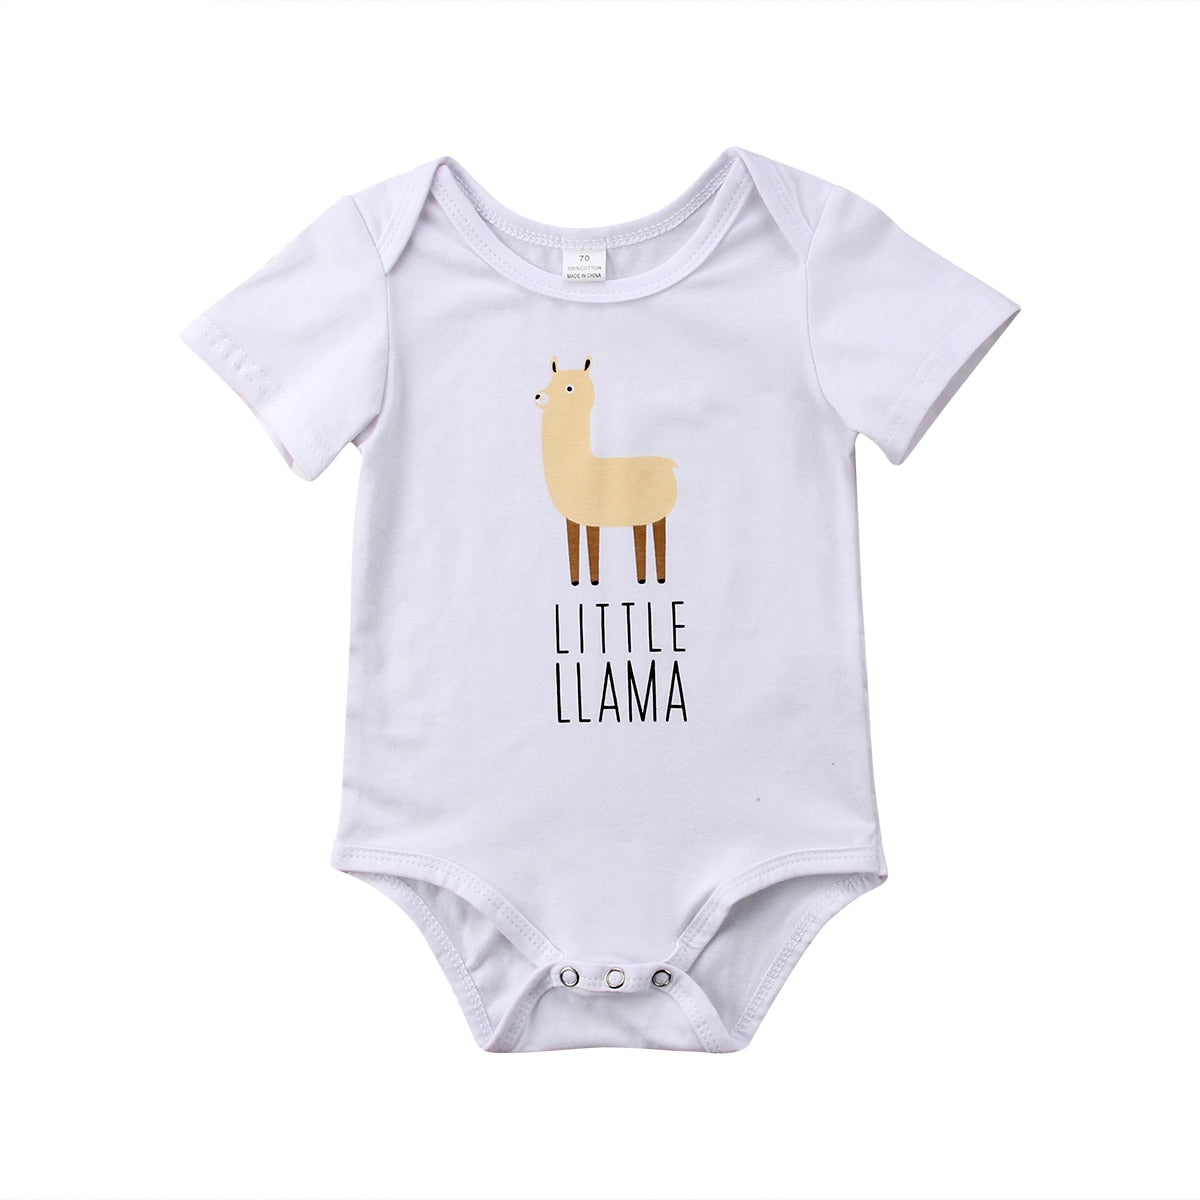 2018 Newborn Infant Baby Boys Girls Cotton Bodysuit Short Sleeves Jumpsuit Llama Outfits Casual Summer White Clothes-eosegal